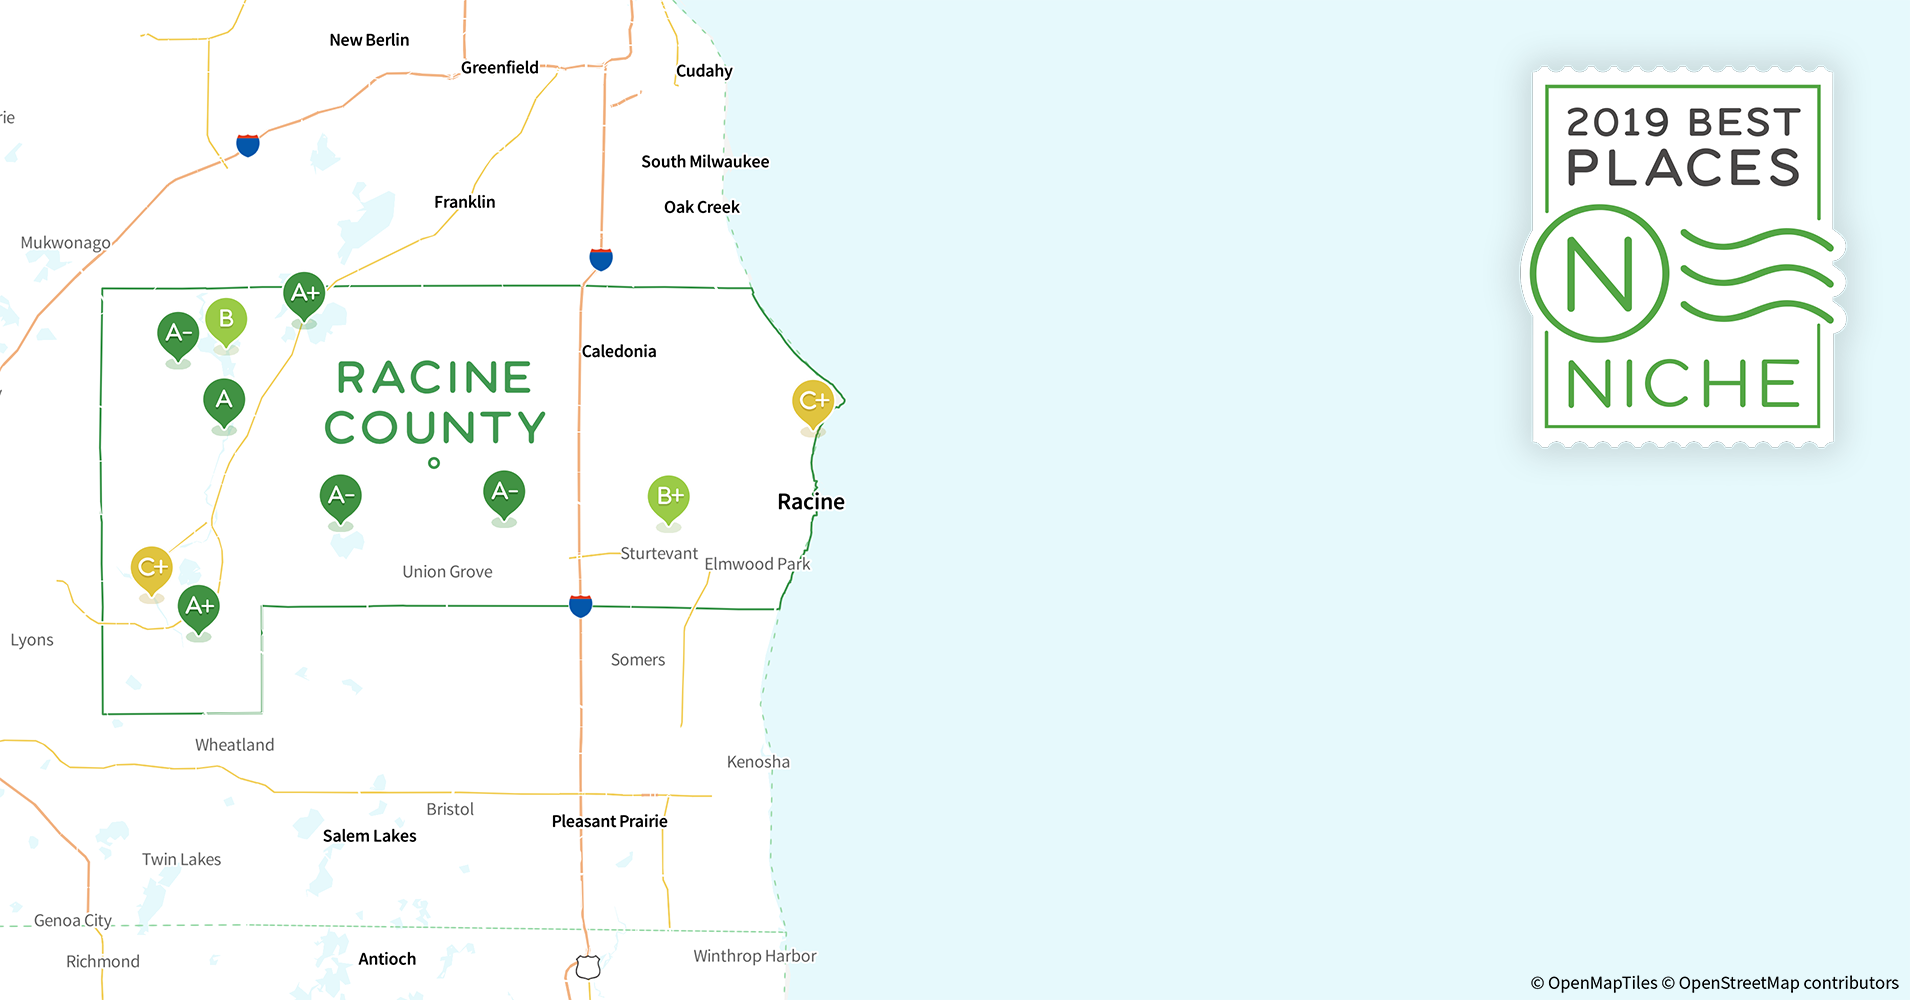 2019 Best Places to Live in Racine County, WI - Niche Town Of Union Wi Door County Map on map of algoma wi, map of city of madison wi, map of jacksonport wi, map of the fox valley wi, map of black river falls wi, map of ohio by county, map of washington island wi, map of liberty grove wi, map of green bay wi, map of apostle islands wi, map of menomonie wi, map of racine wi, map of de soto wi, map of wisconsin, map of lakewood wi, map of beloit wi, map of peninsula state park wi, map of castle rock lake wi, map of baileys harbor wi,